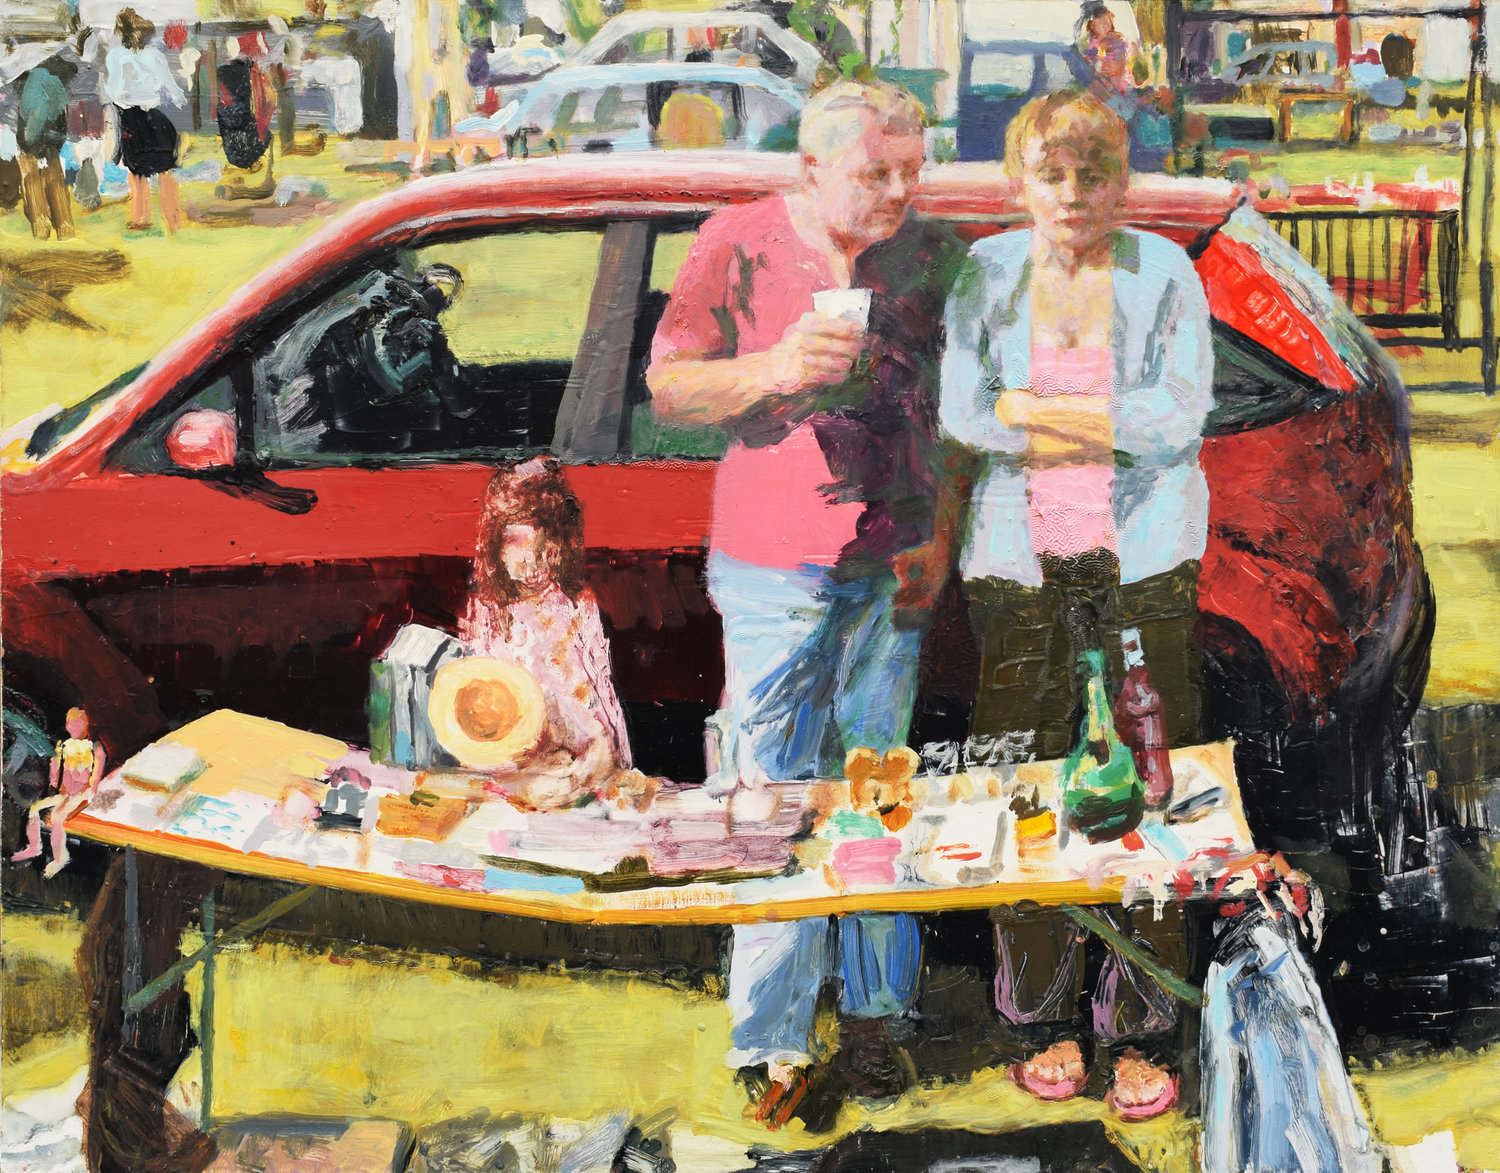 'Car boot sale', Trevor Burgess, Oil on board, 91 x 115 x 3 cm